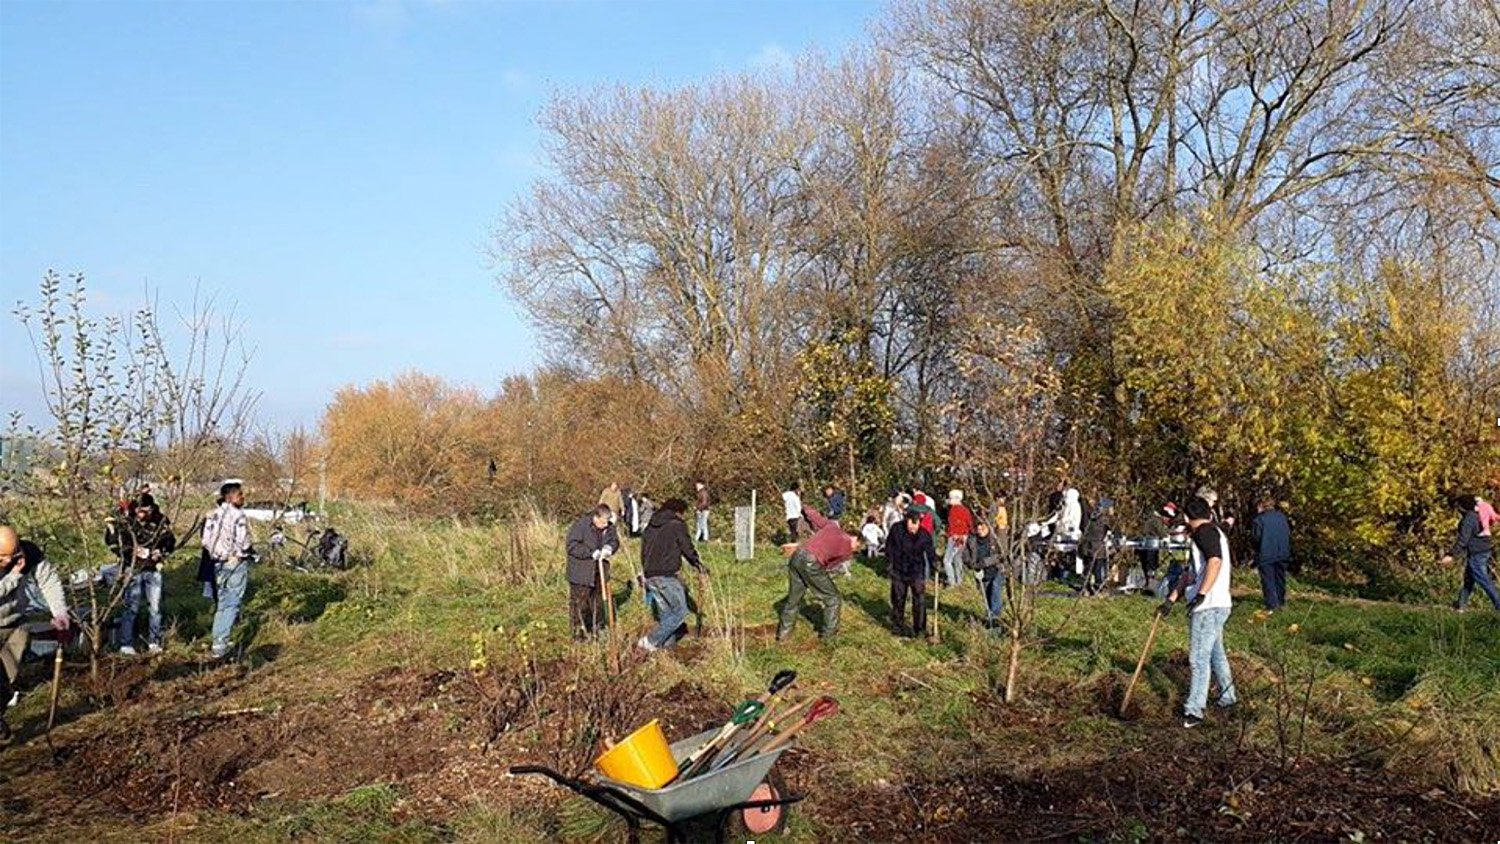 Creating a network of community orchards and forest gardens – Fruit and Nut Village, Stirchley, Birmingham